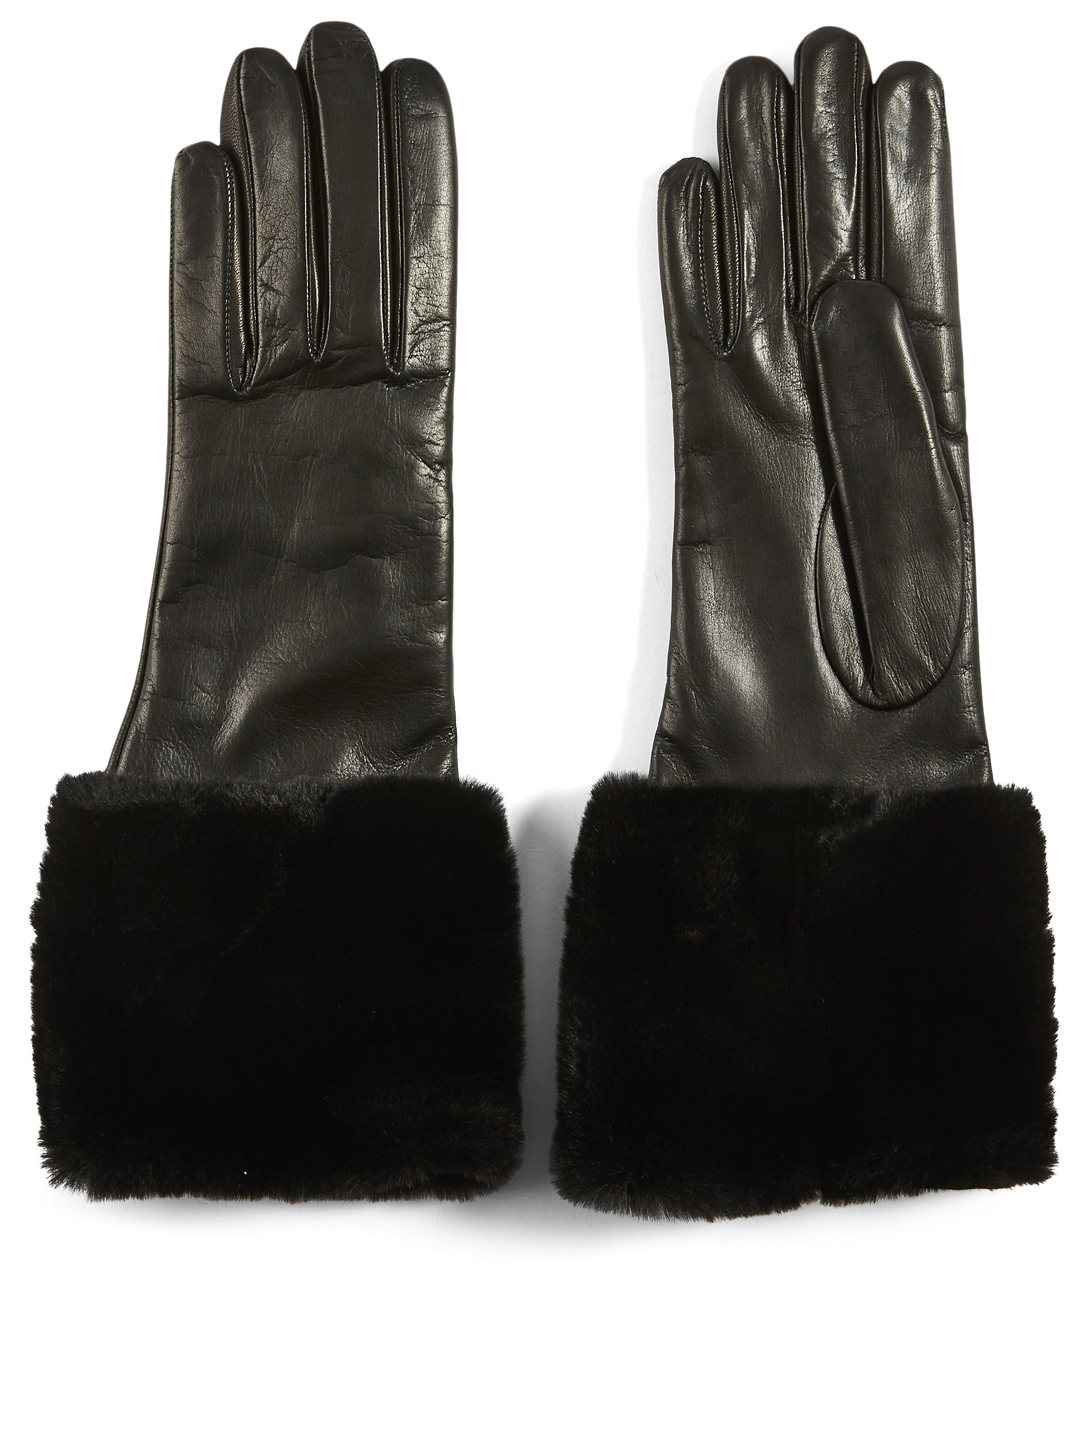 FLORIANA GLOVES Two-Button Leather Fur Cuff Gloves With Cashmere Lining Women's Black